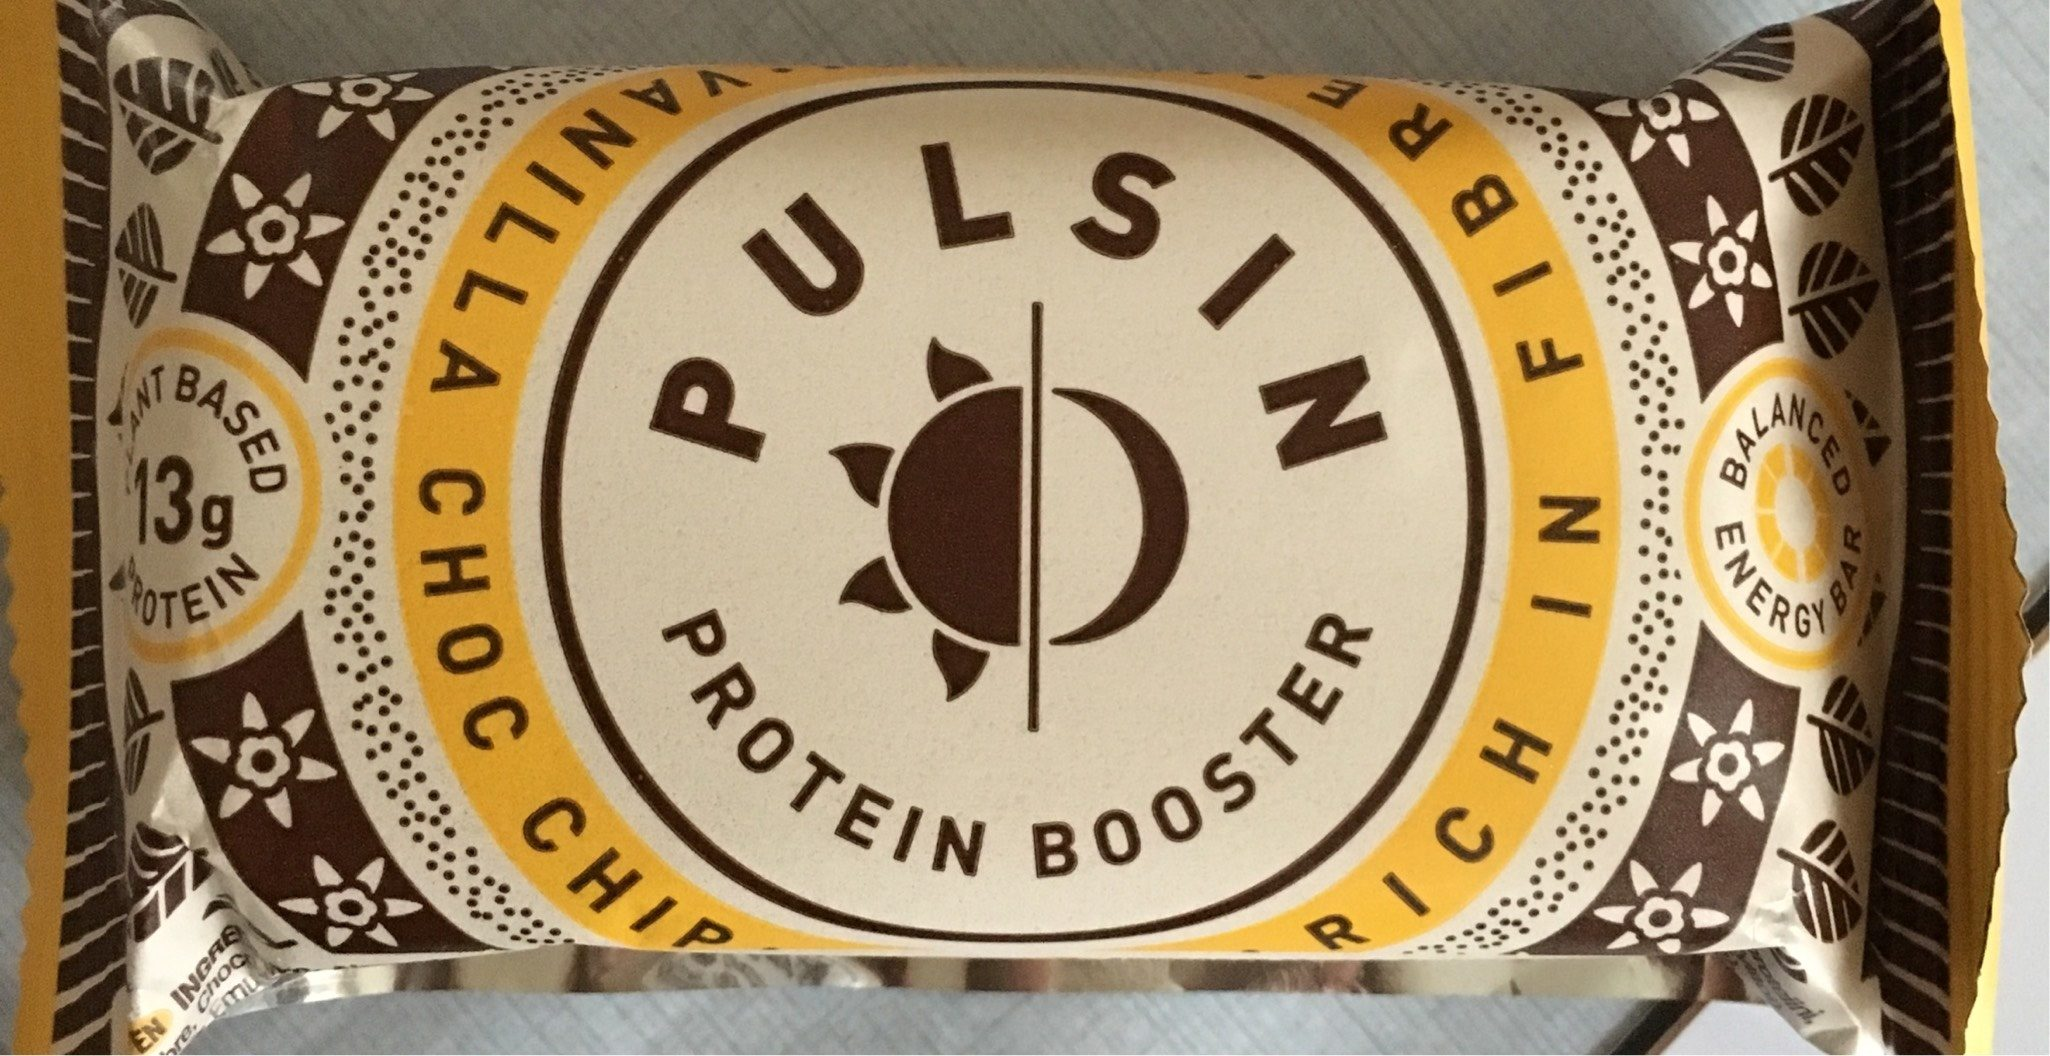 Pulsin Protein Booster - Product